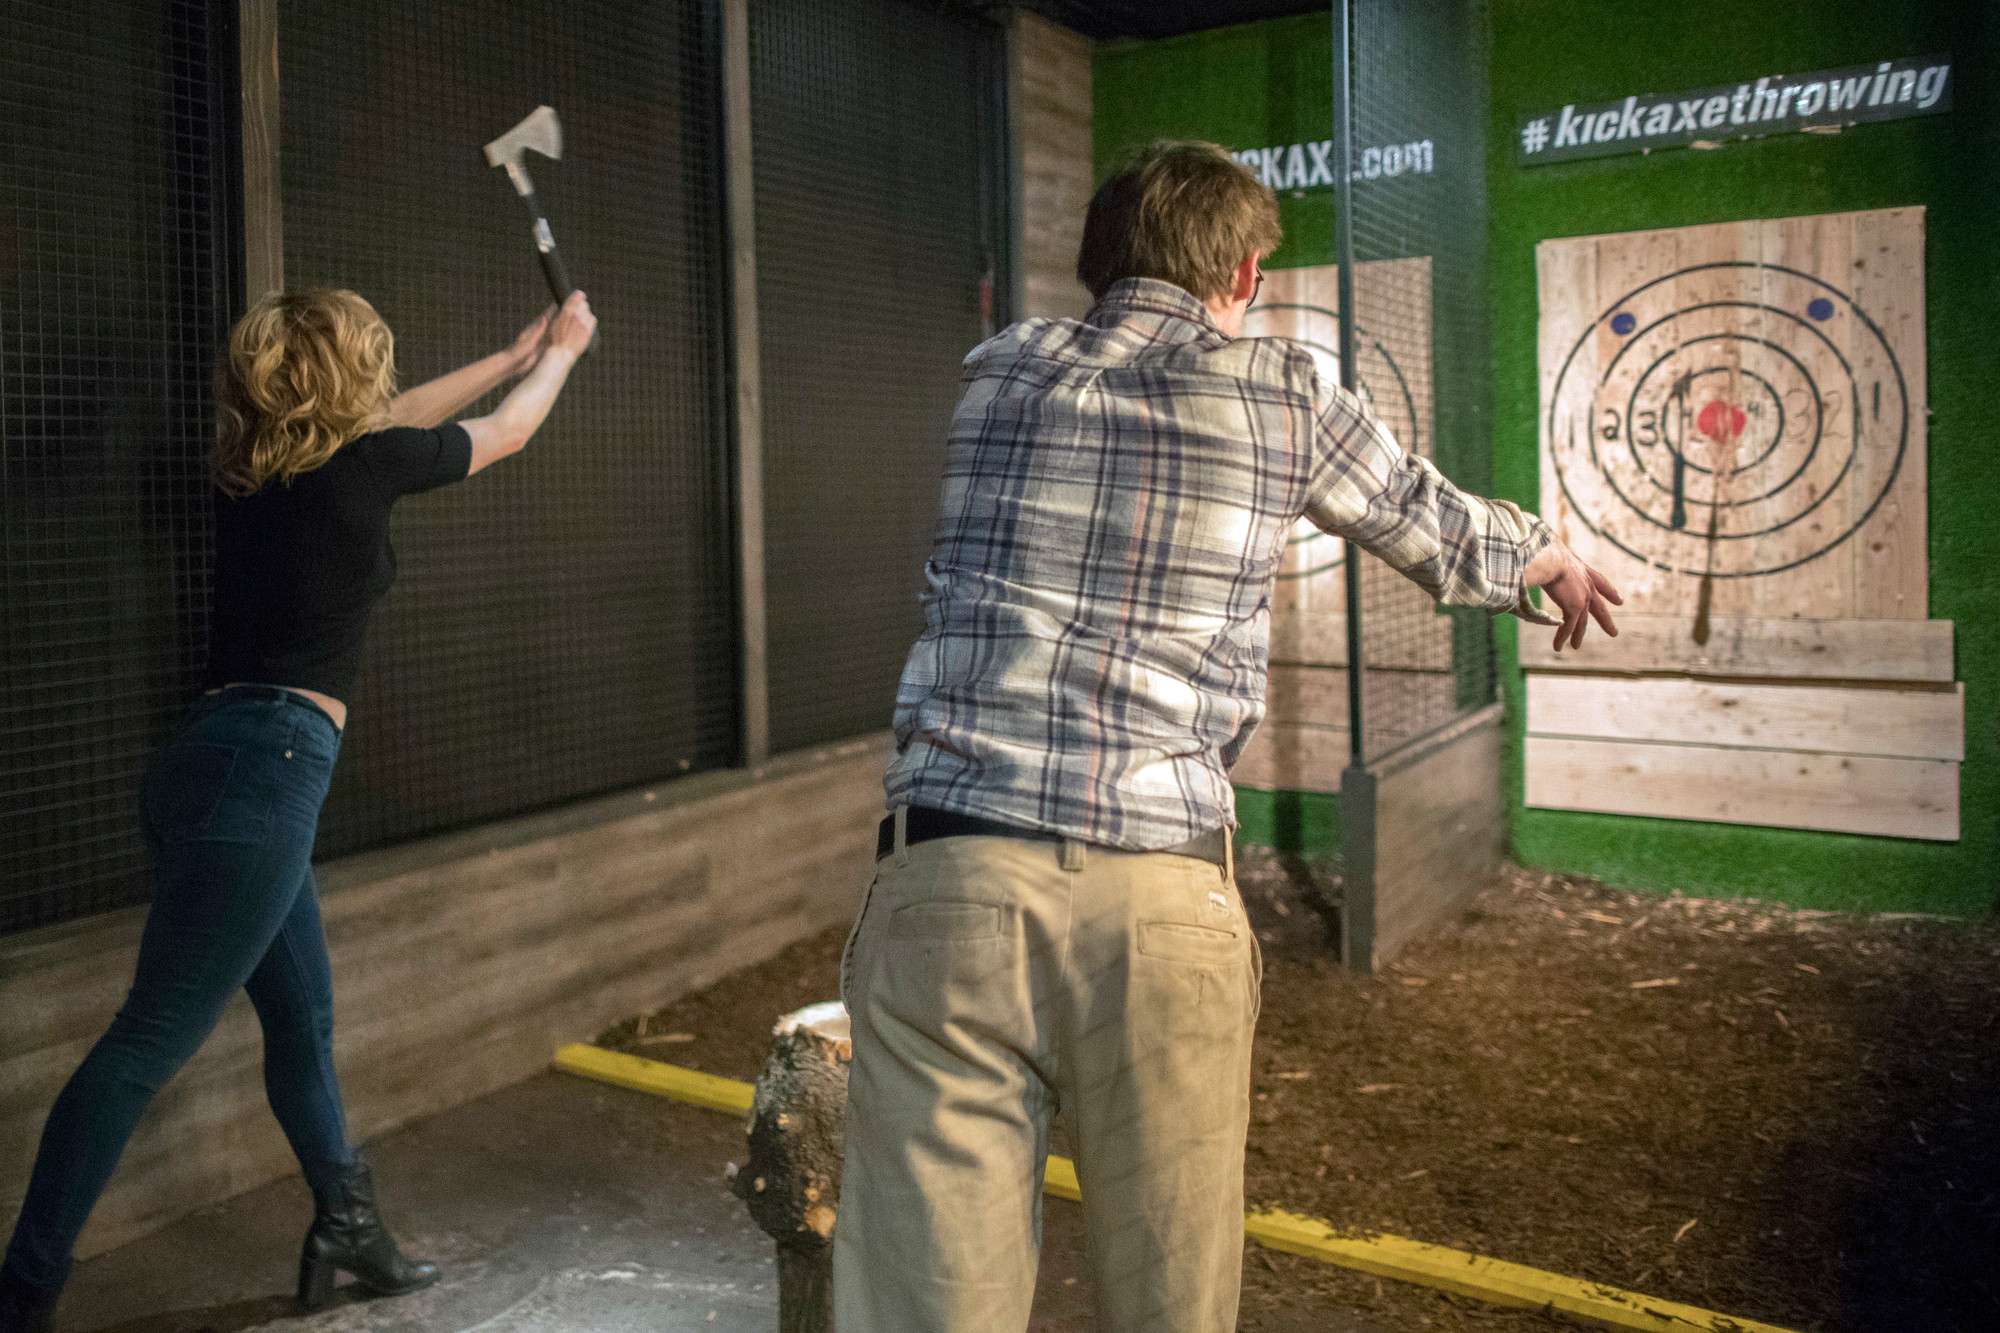 Contestants throw hatchets at wooden bull's-eyes at the Kick Axe Throwing venue in the Brooklyn borough of New York.